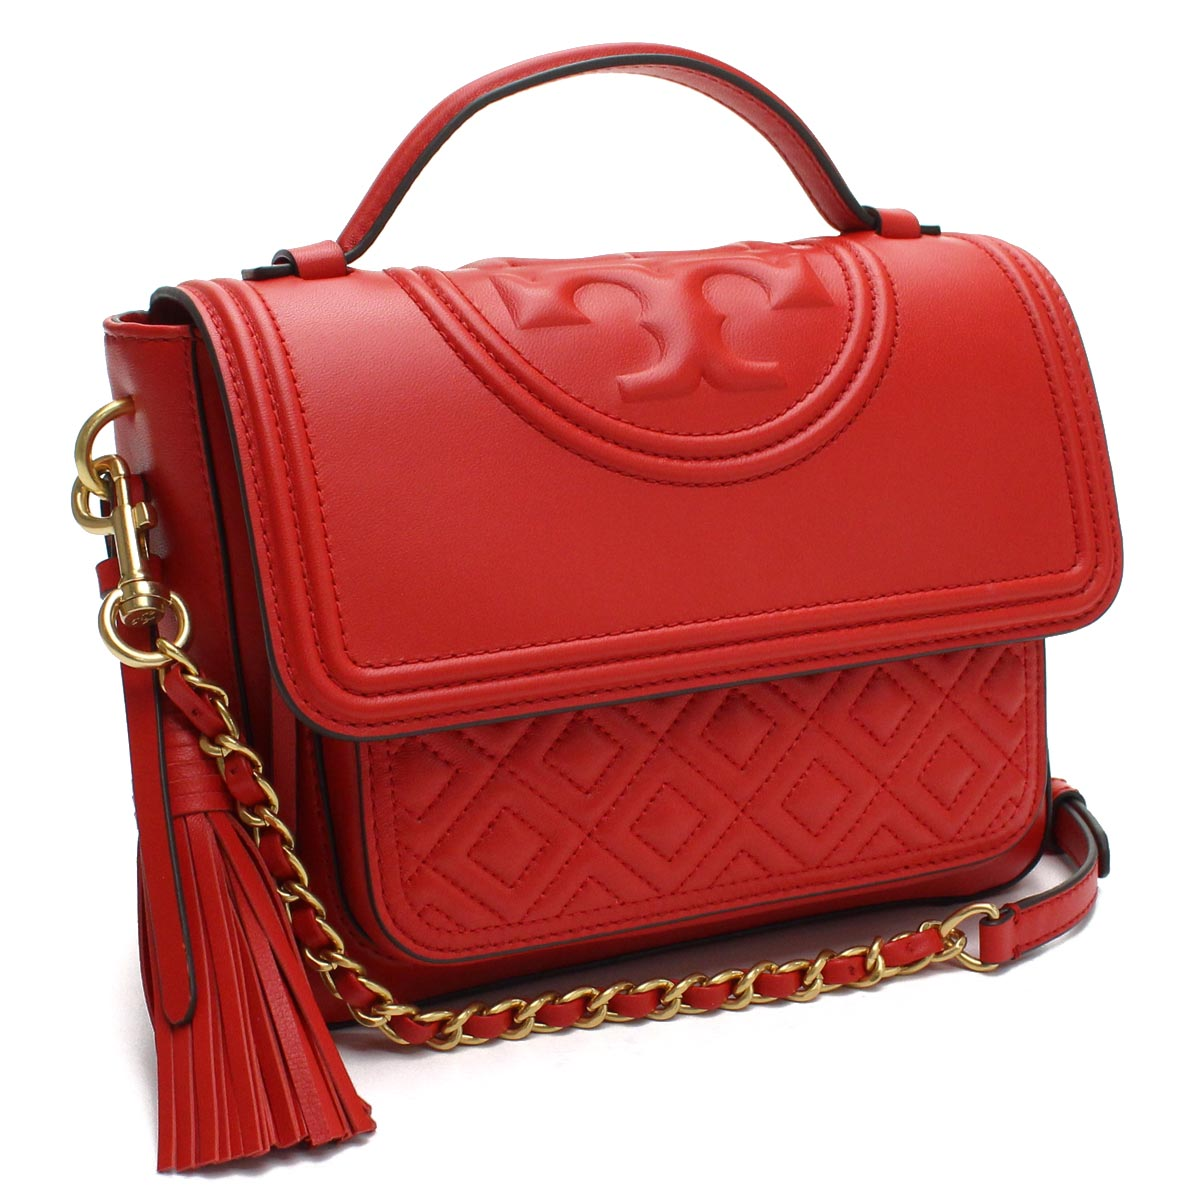 821171b4b67d Bighit The total brand wholesale  Tolly Birch TORY BURCH FLEMING QUILTED  LEATHER Fleming 2Way handbag 45147 612 Brilliant Red red system